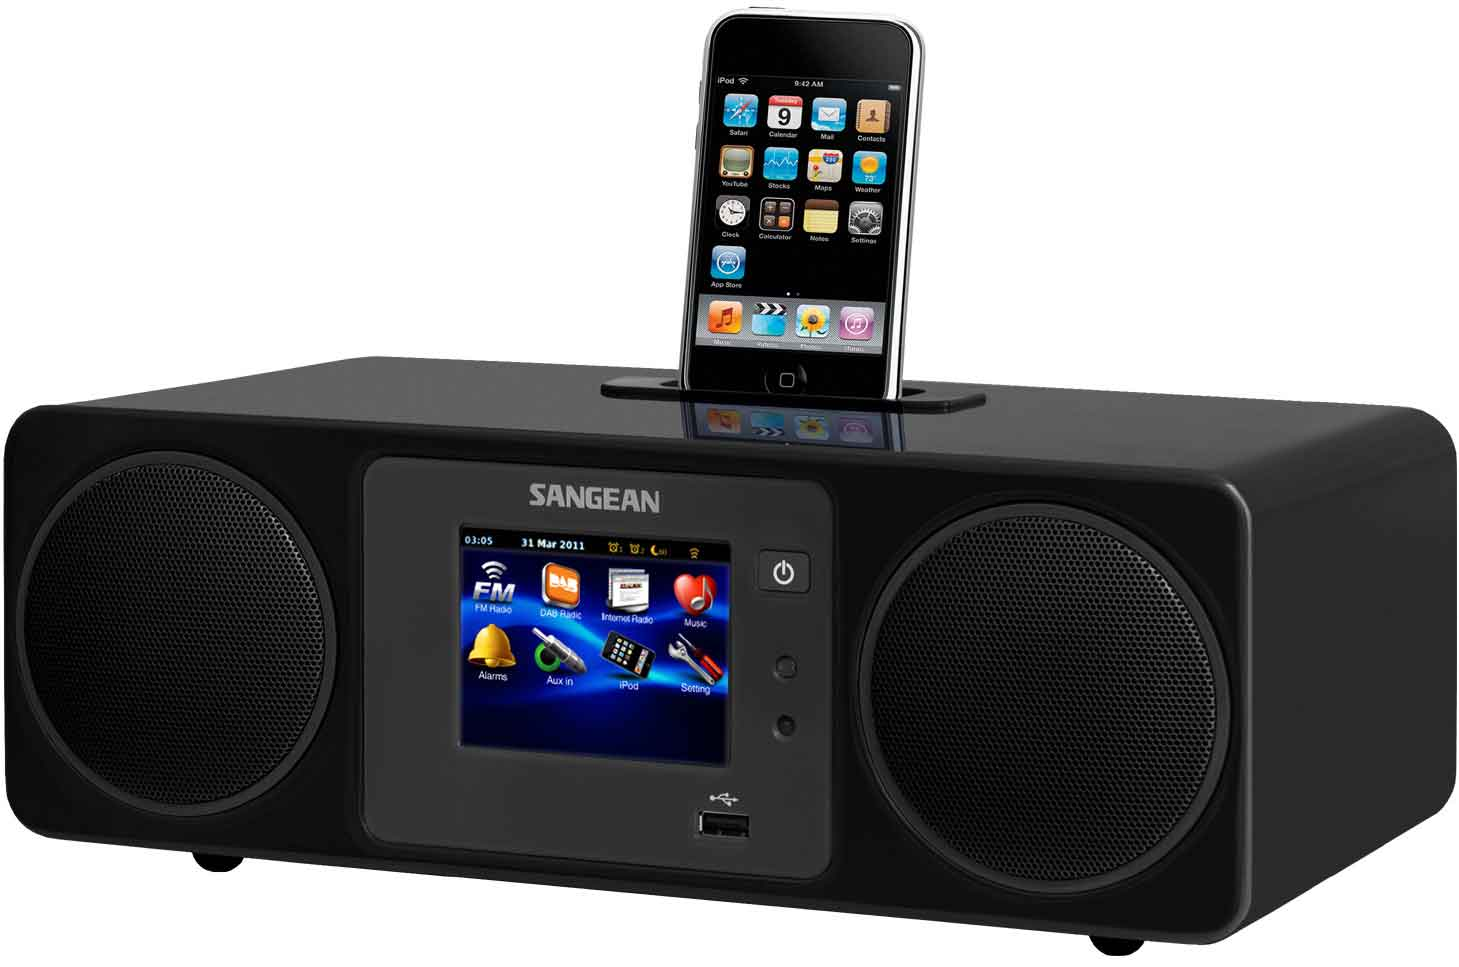 sangean wifi radio fm dab 4 f. Black Bedroom Furniture Sets. Home Design Ideas